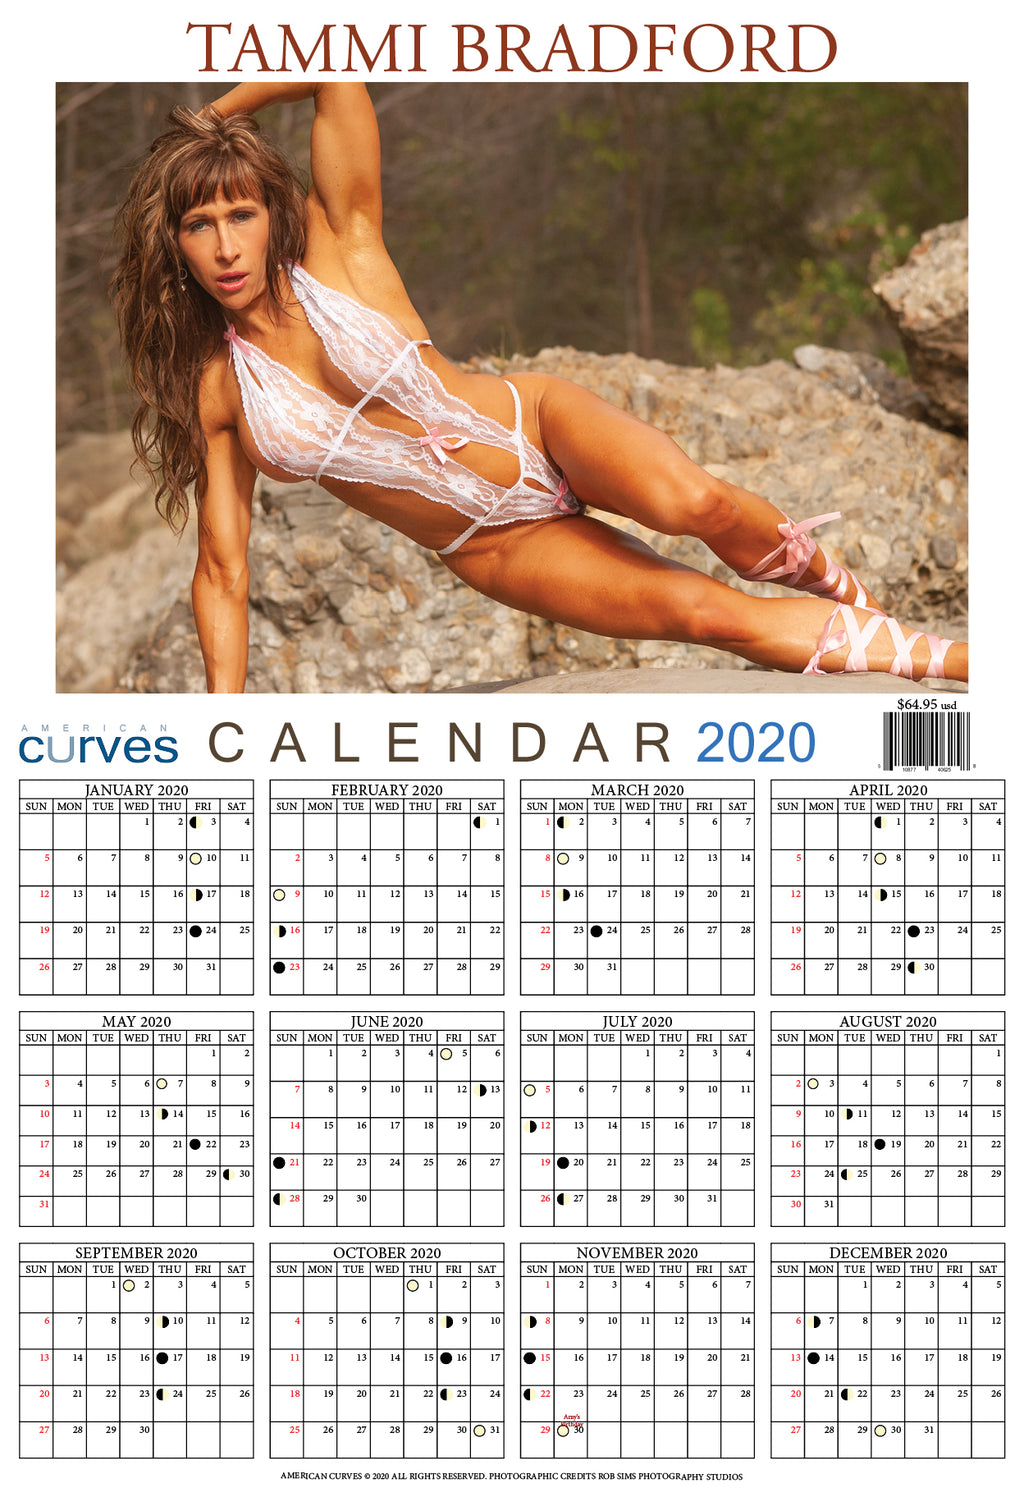 Tammi Bradford-13x19 in. 2020 Wall Calendar on high-quality paper